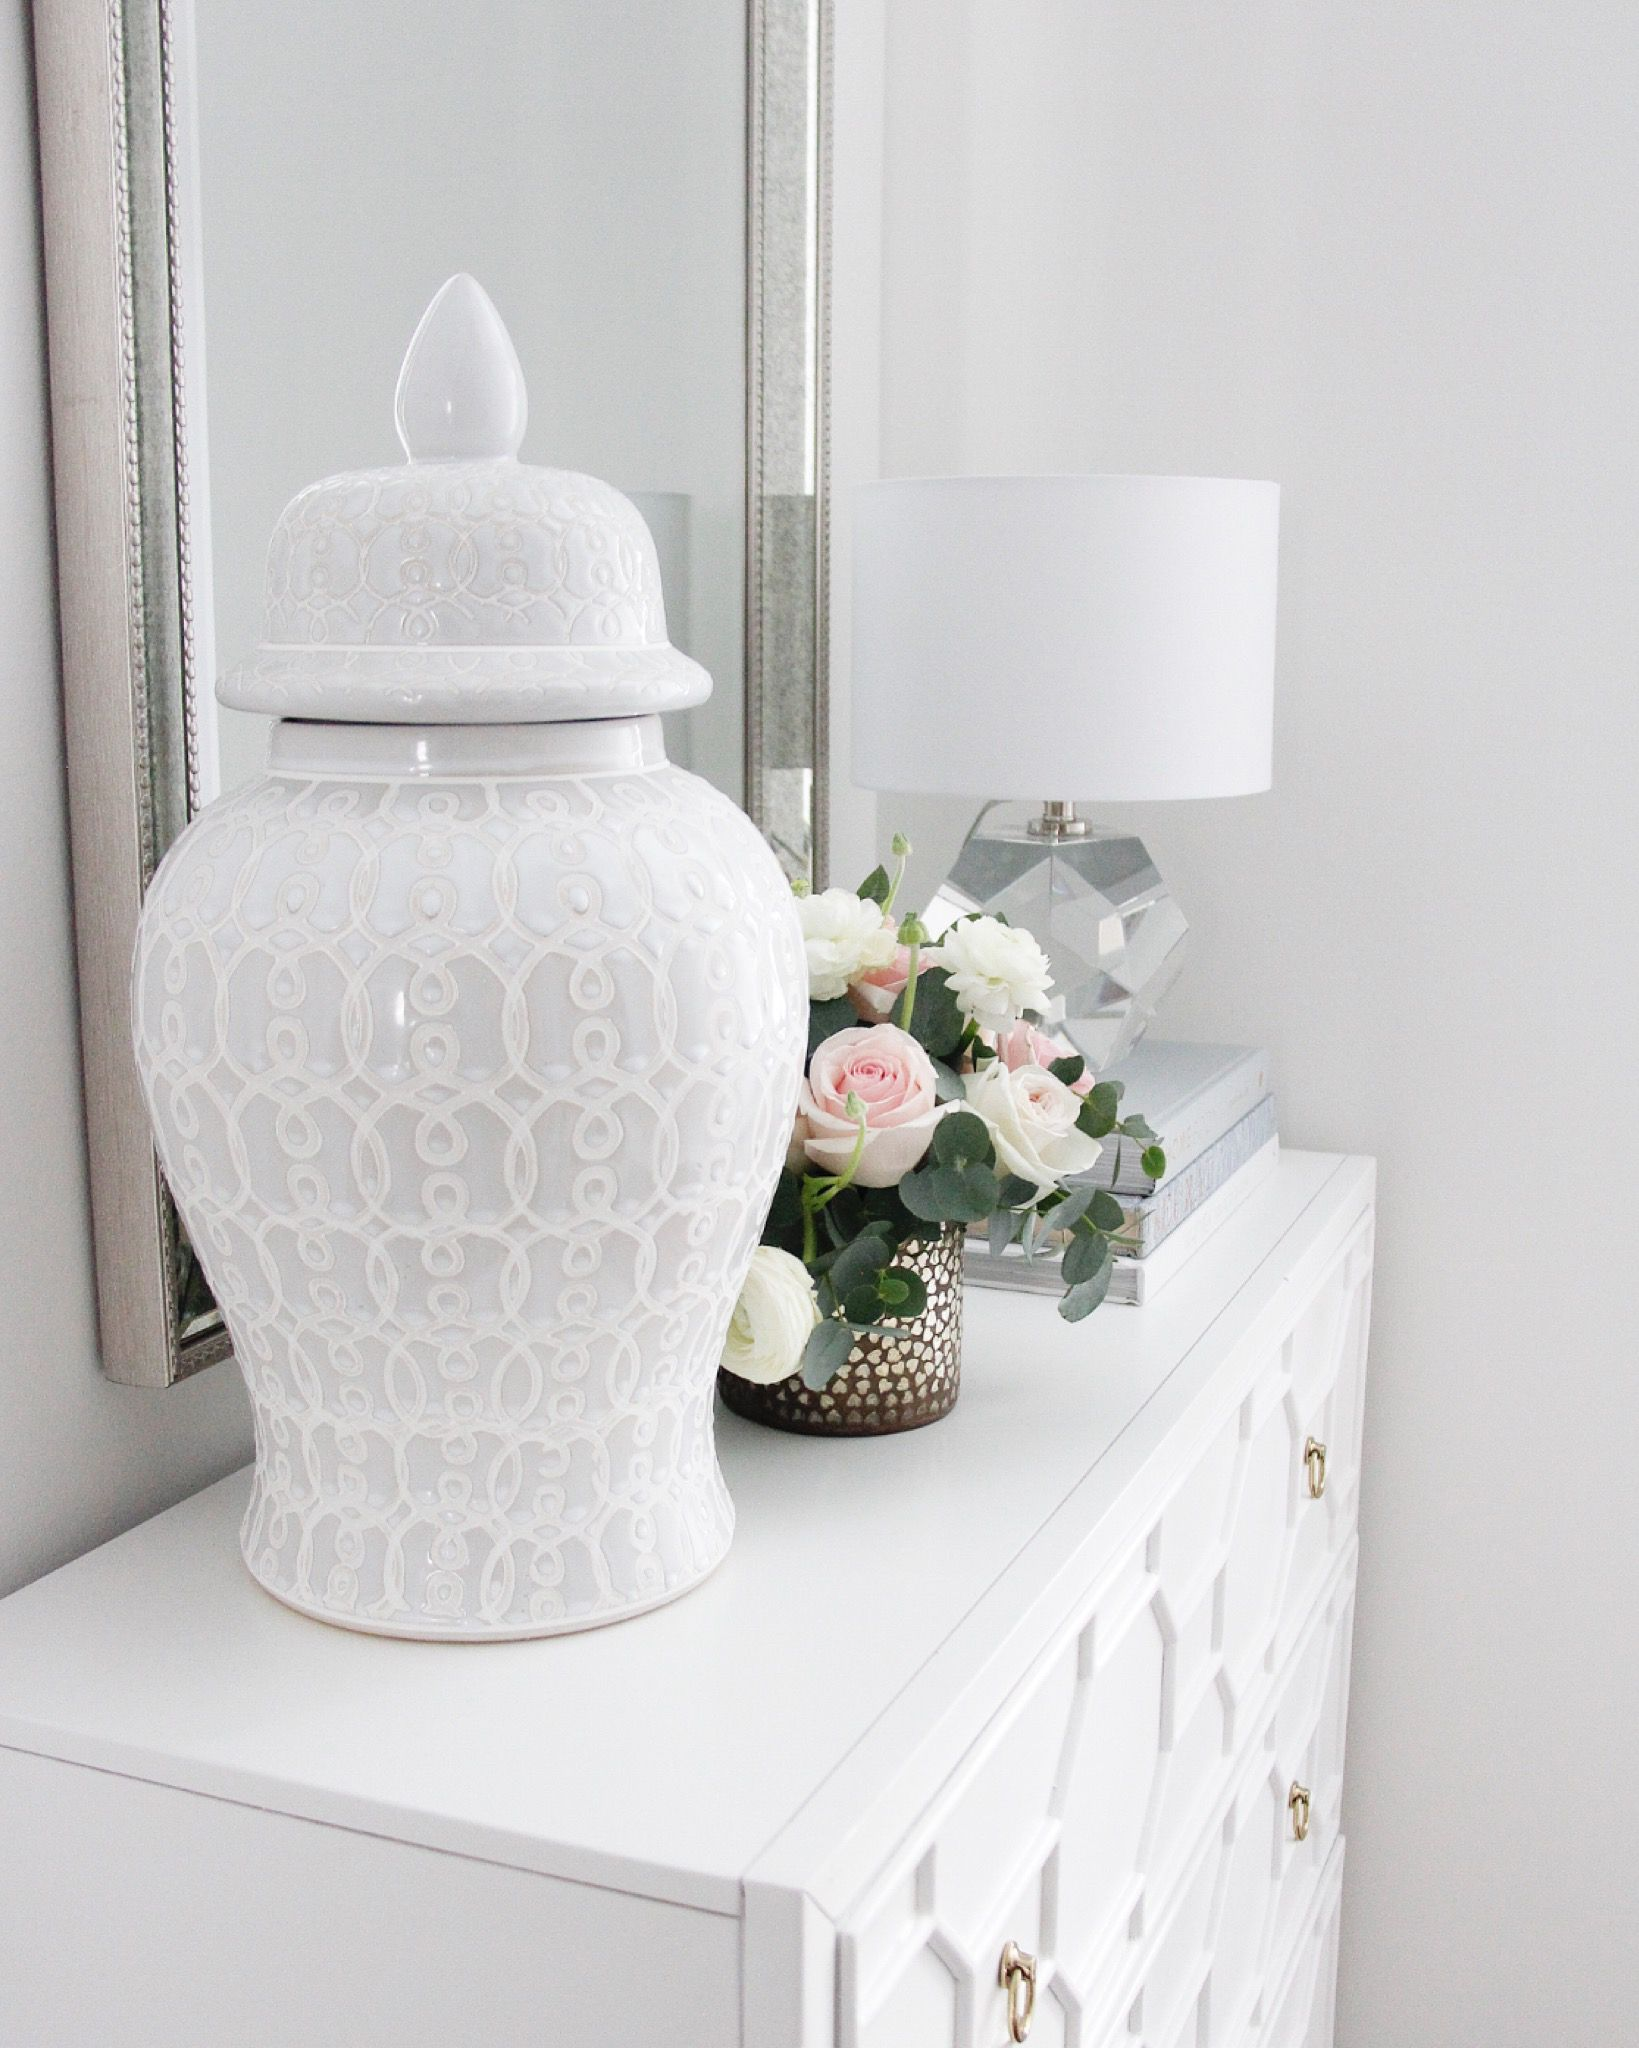 Ginger jar creating a statement in the entryway. Tap to shop! #FoyerDecor #WhiteFoyer #GingerJarStyling #TransitionalHome #TraditionalHome #WhiteHome